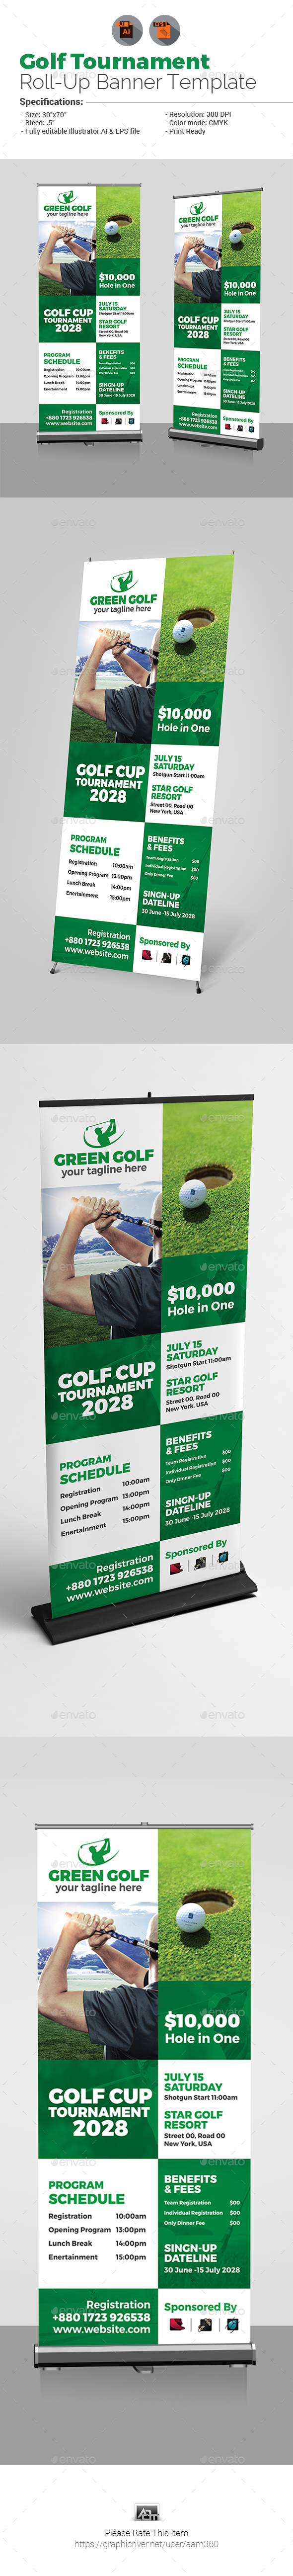 Golf Tournament Promotion Roll-up Banner - Signage Print Templates